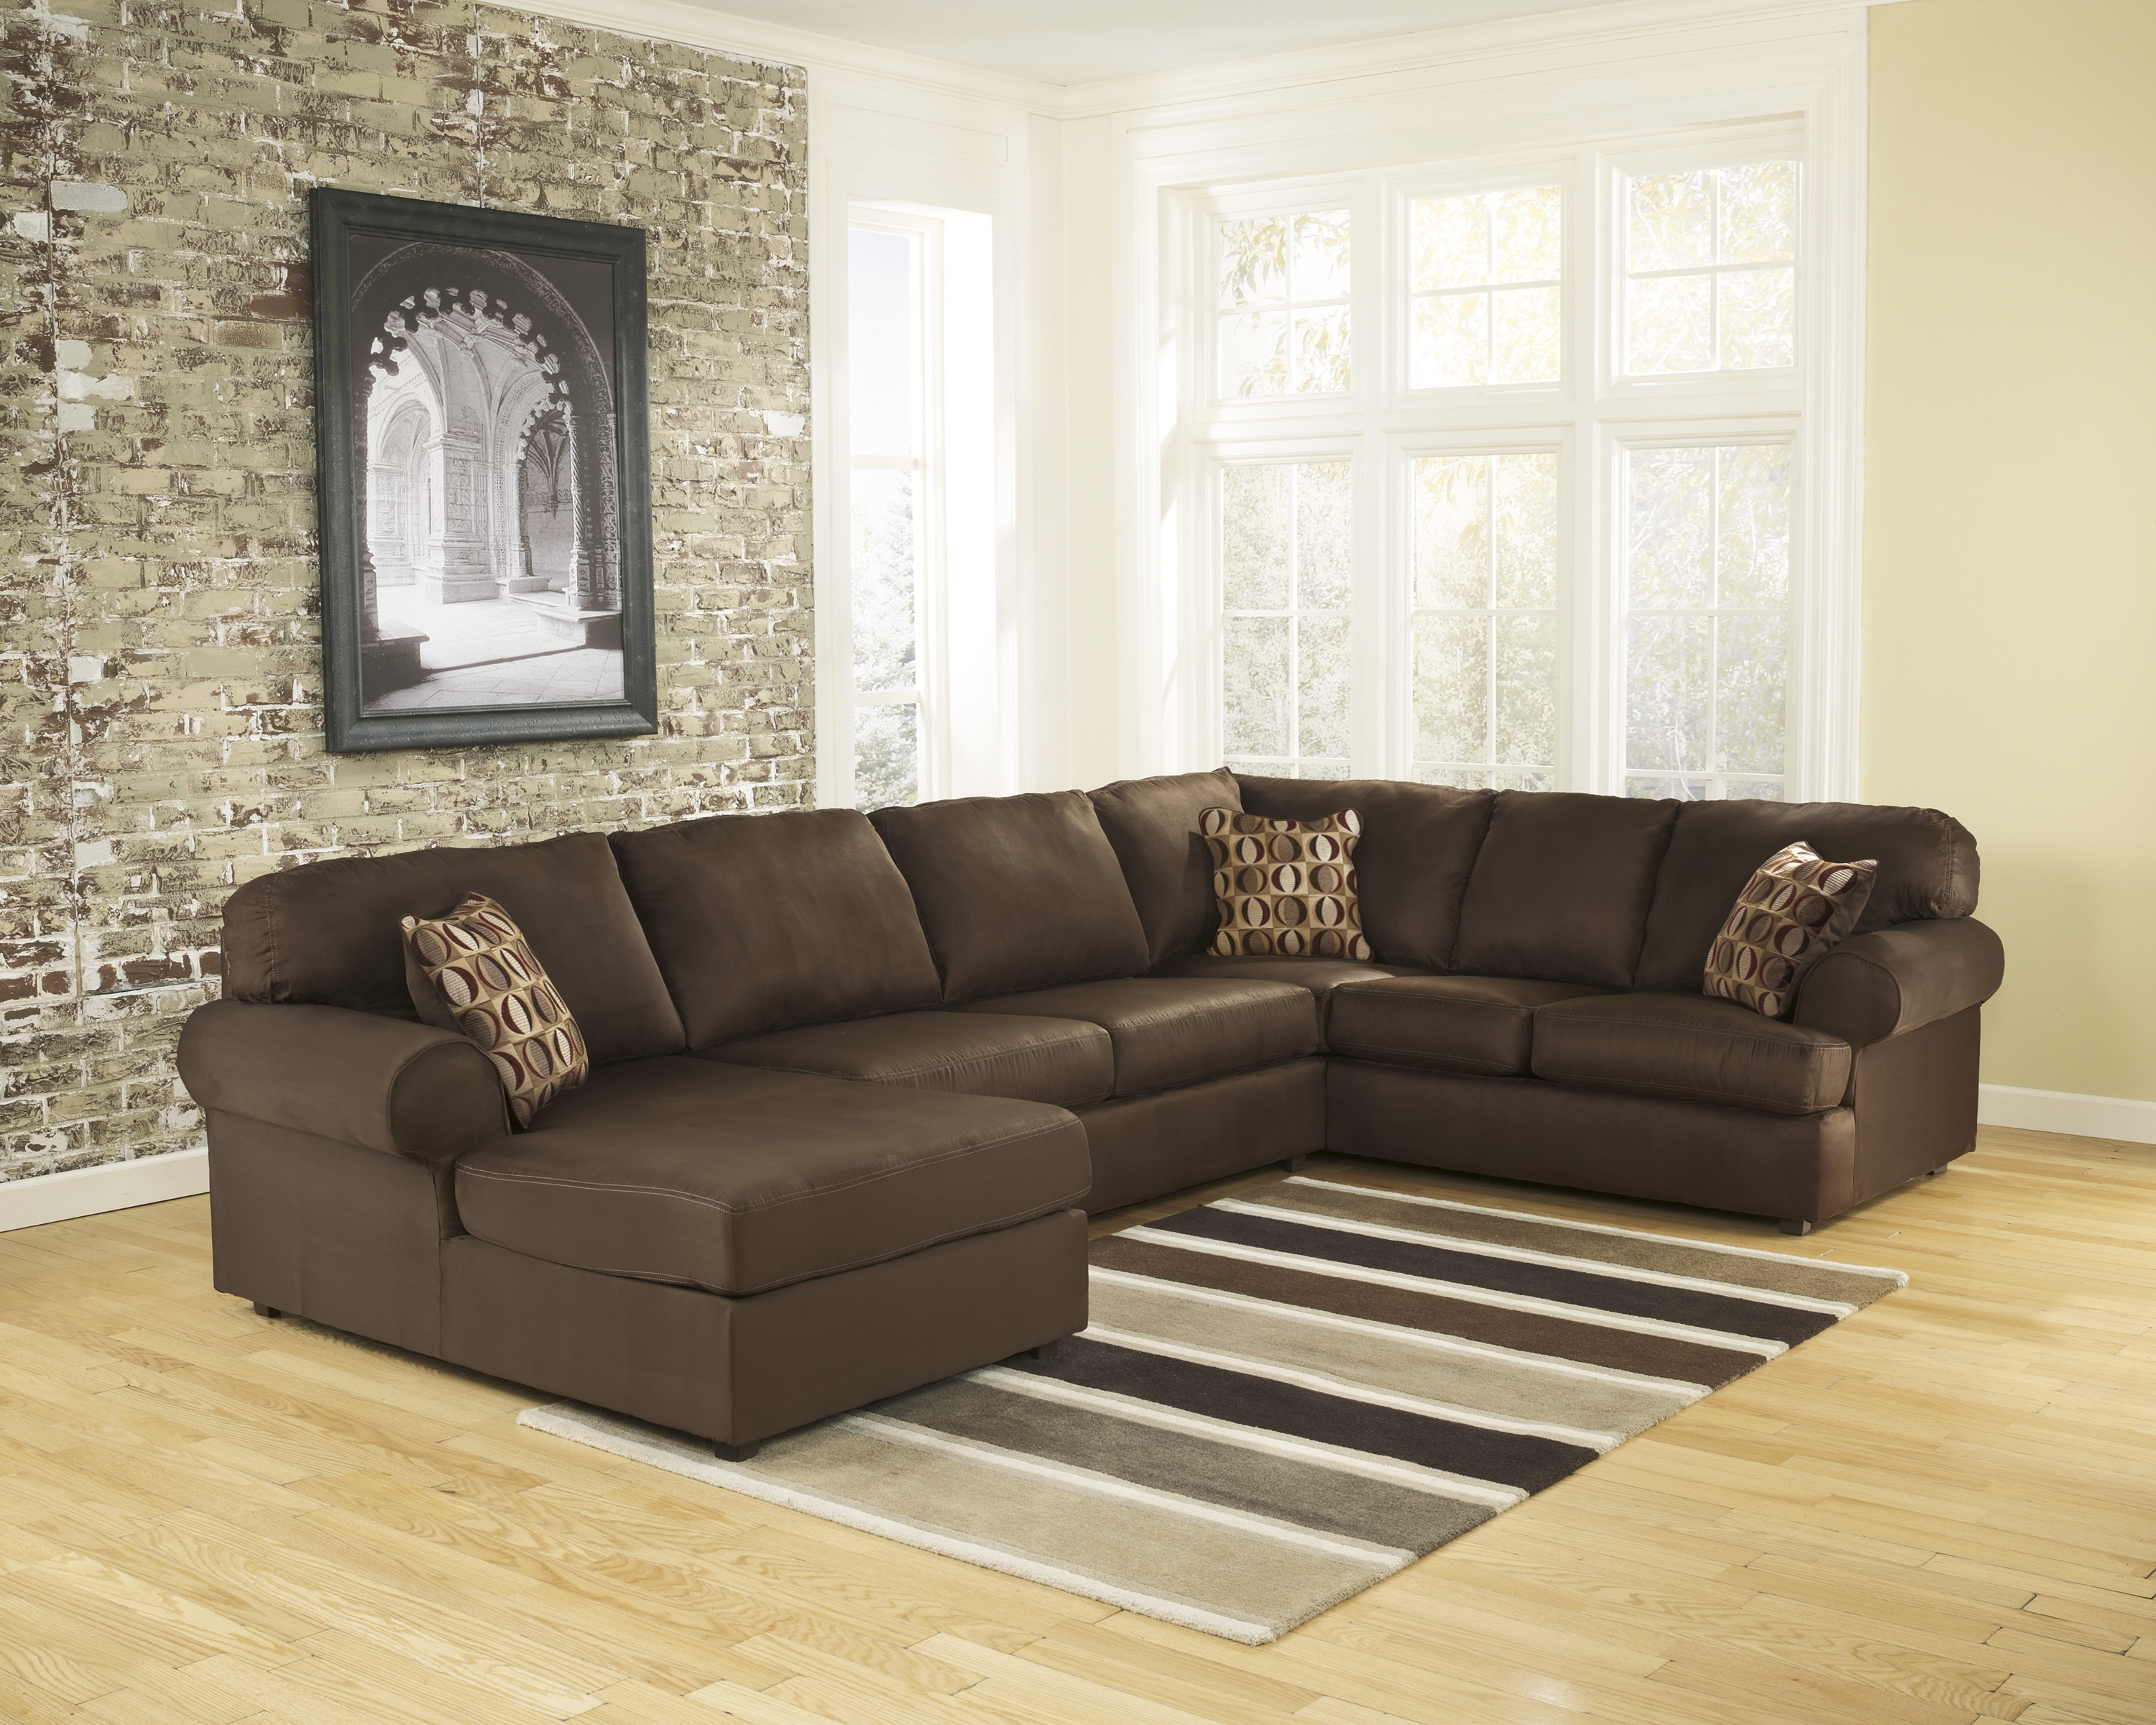 Best Ashleys Furniture Sectionals Pictures – Liltigertoo Pertaining To Most Popular 10X8 Sectional Sofas (View 6 of 15)